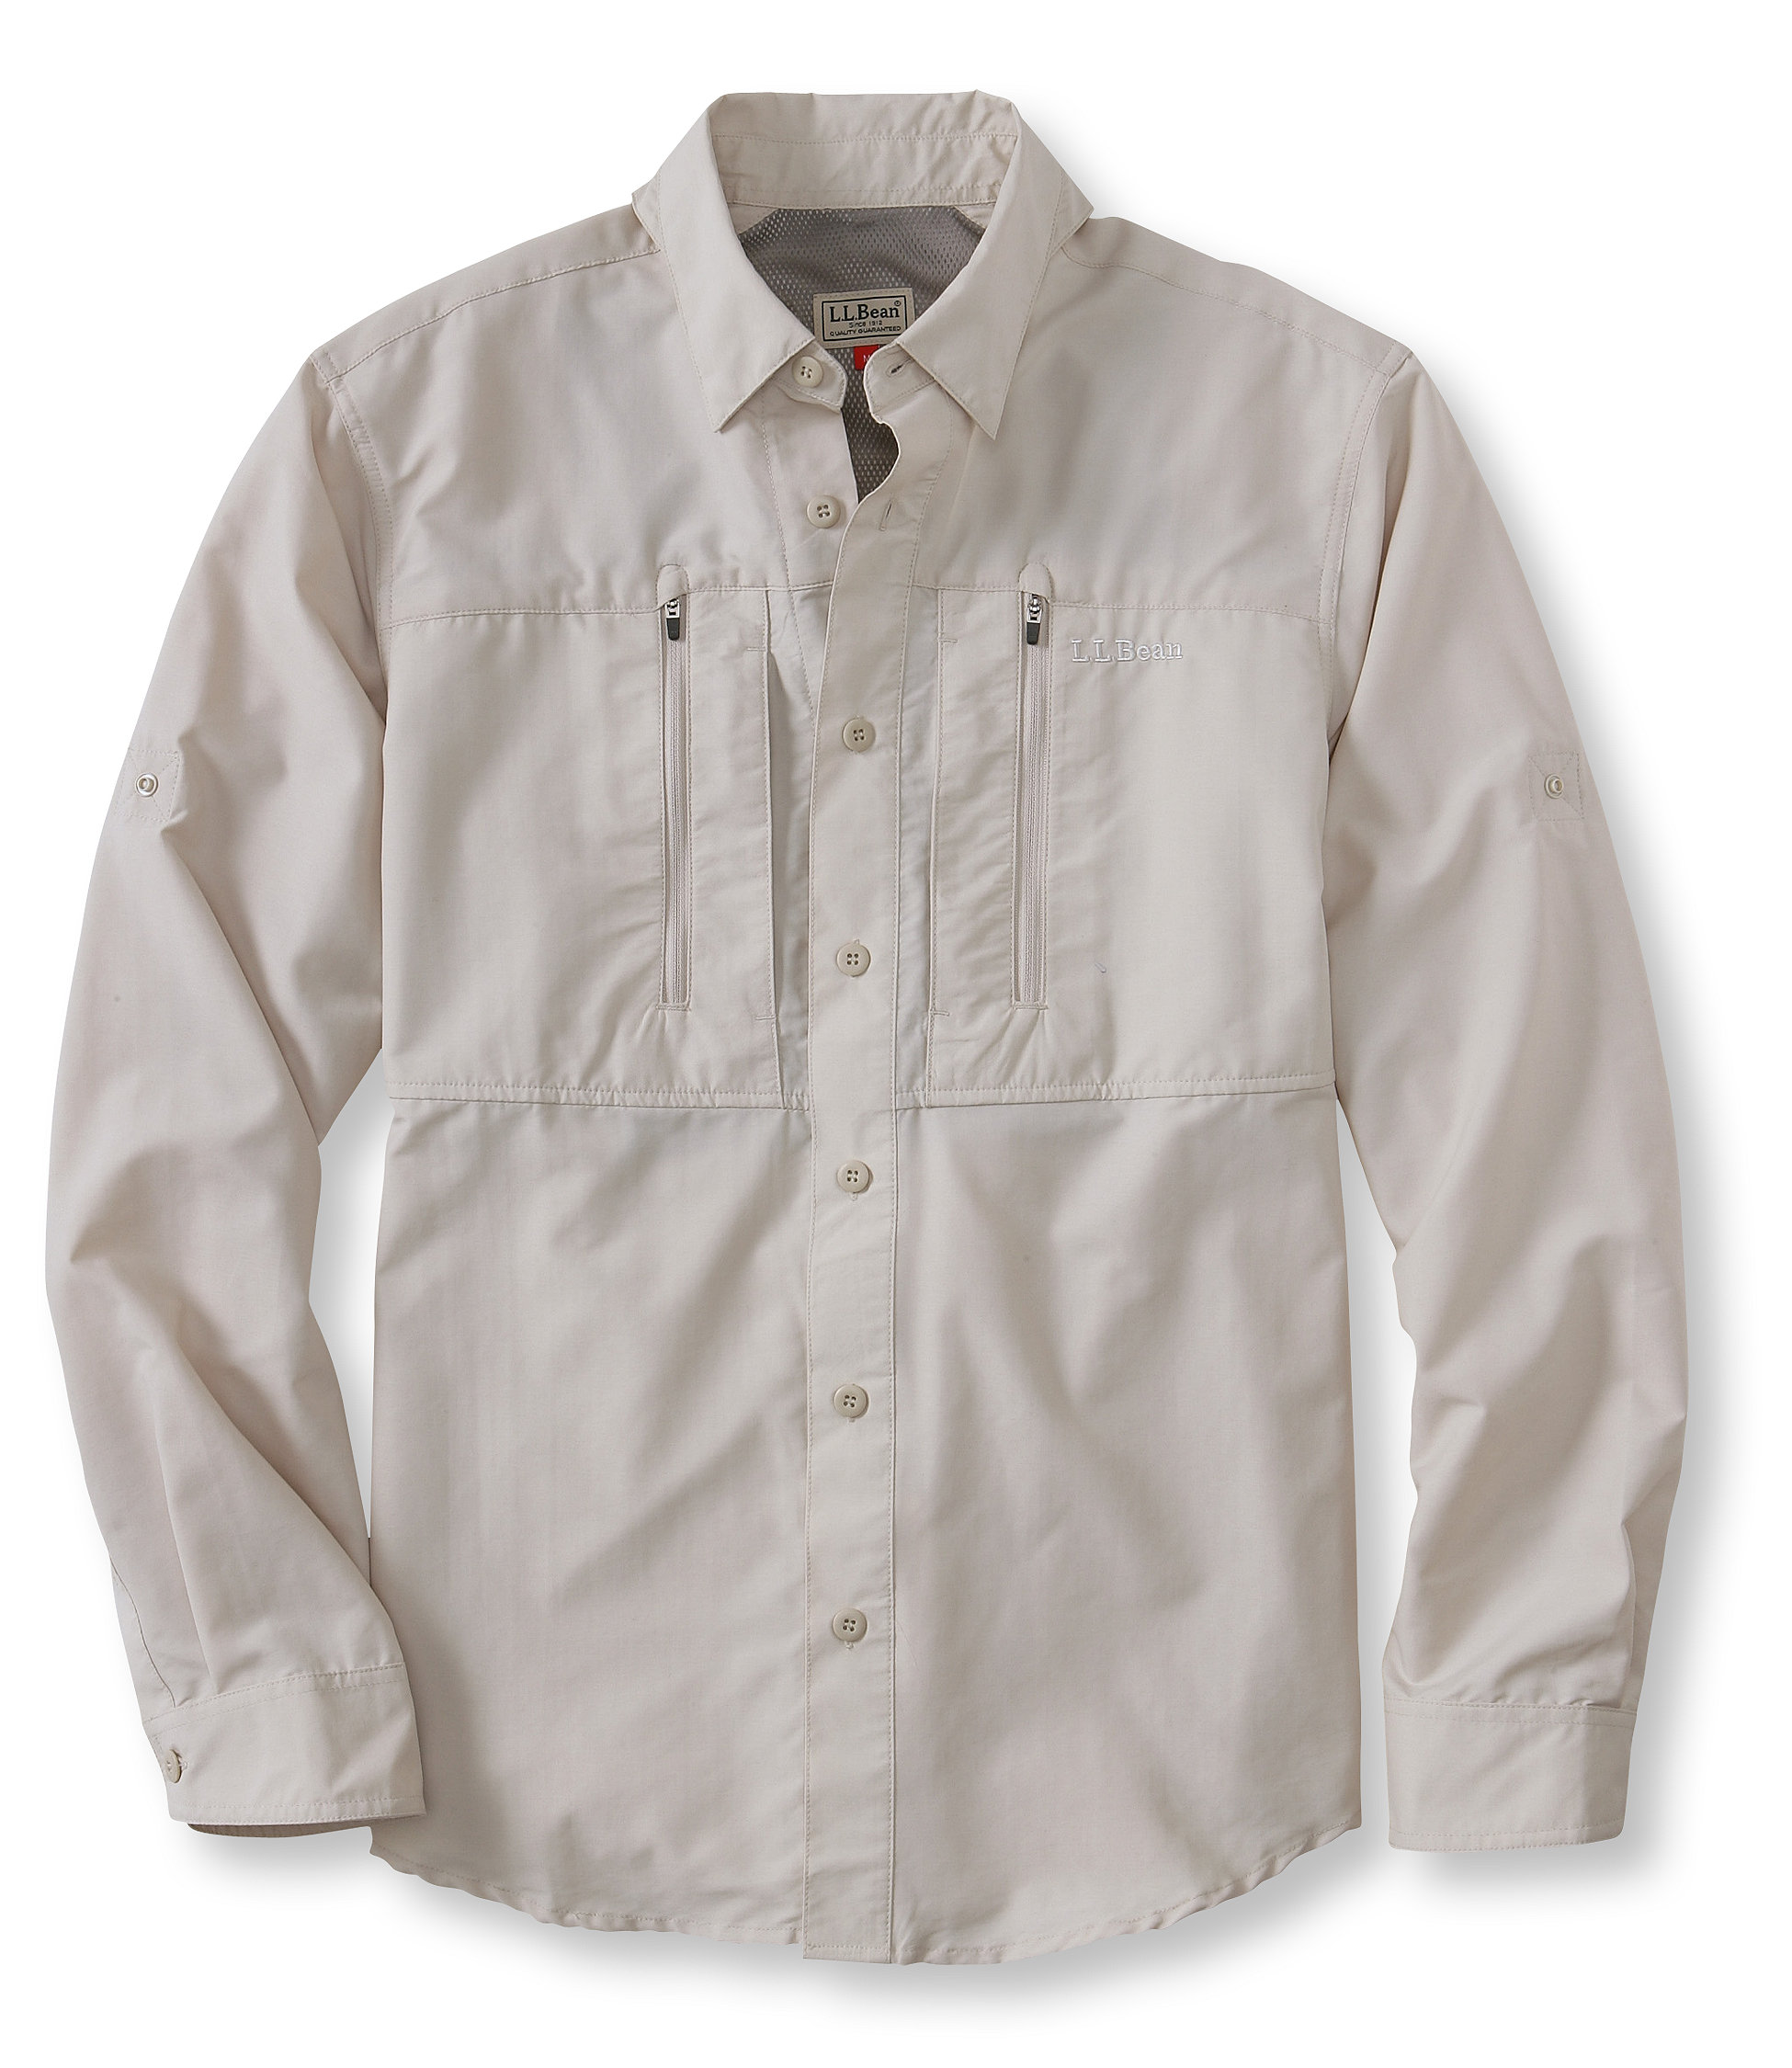 L.L.Bean No Fly Zone Shirt